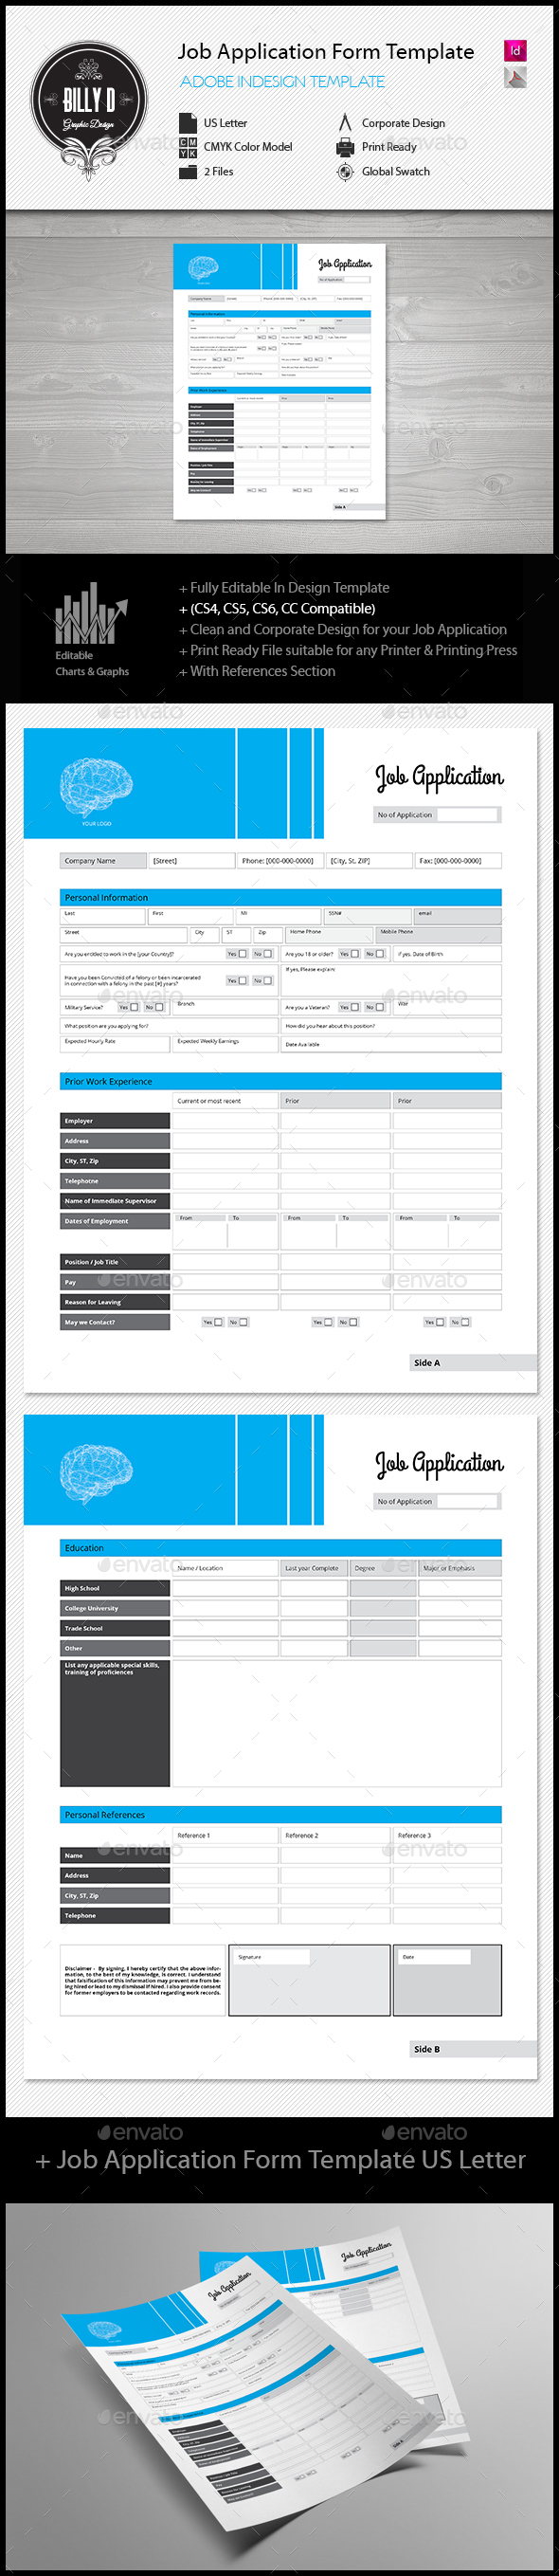 Job Application Form Template Us Letter  Template And Form Design